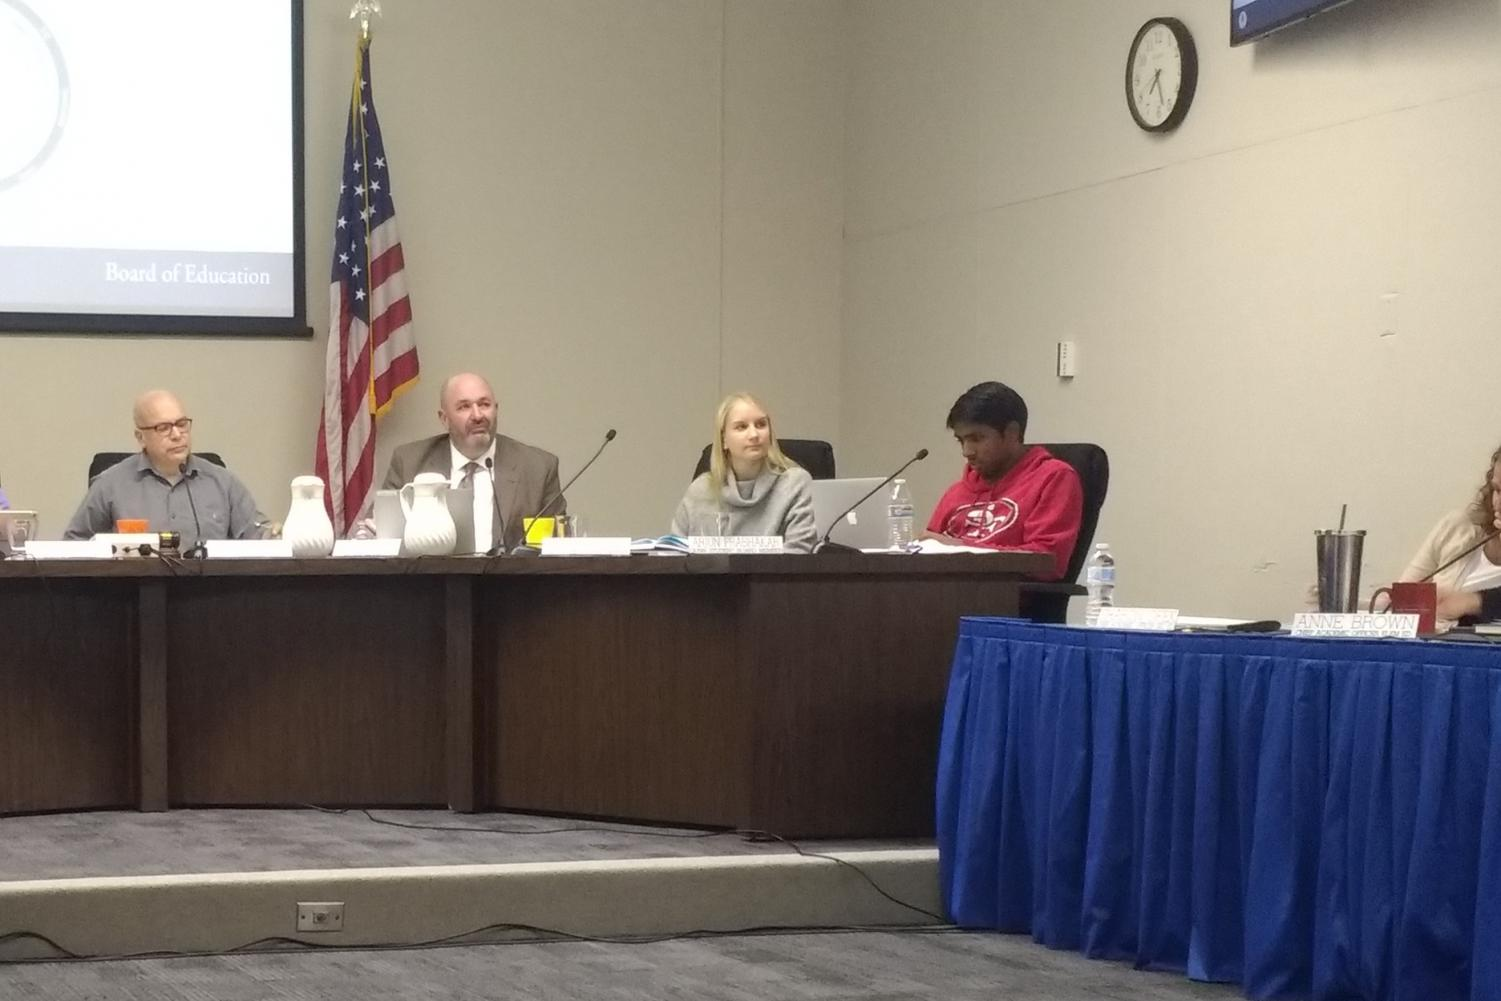 """The Palo Alto Unified School Board listens to Komey Vishakan, the district manager of policy and legal compliance (not pictured), summarize the revised Memorandum of Understanding with the Palo Alto Police Department at a board meeting on Tuesday. Vishakan said that the memorandum was long overdue. """"This was due back on August 14, 2017, so we are under pressure to get this completed,"""" Vishakan said."""